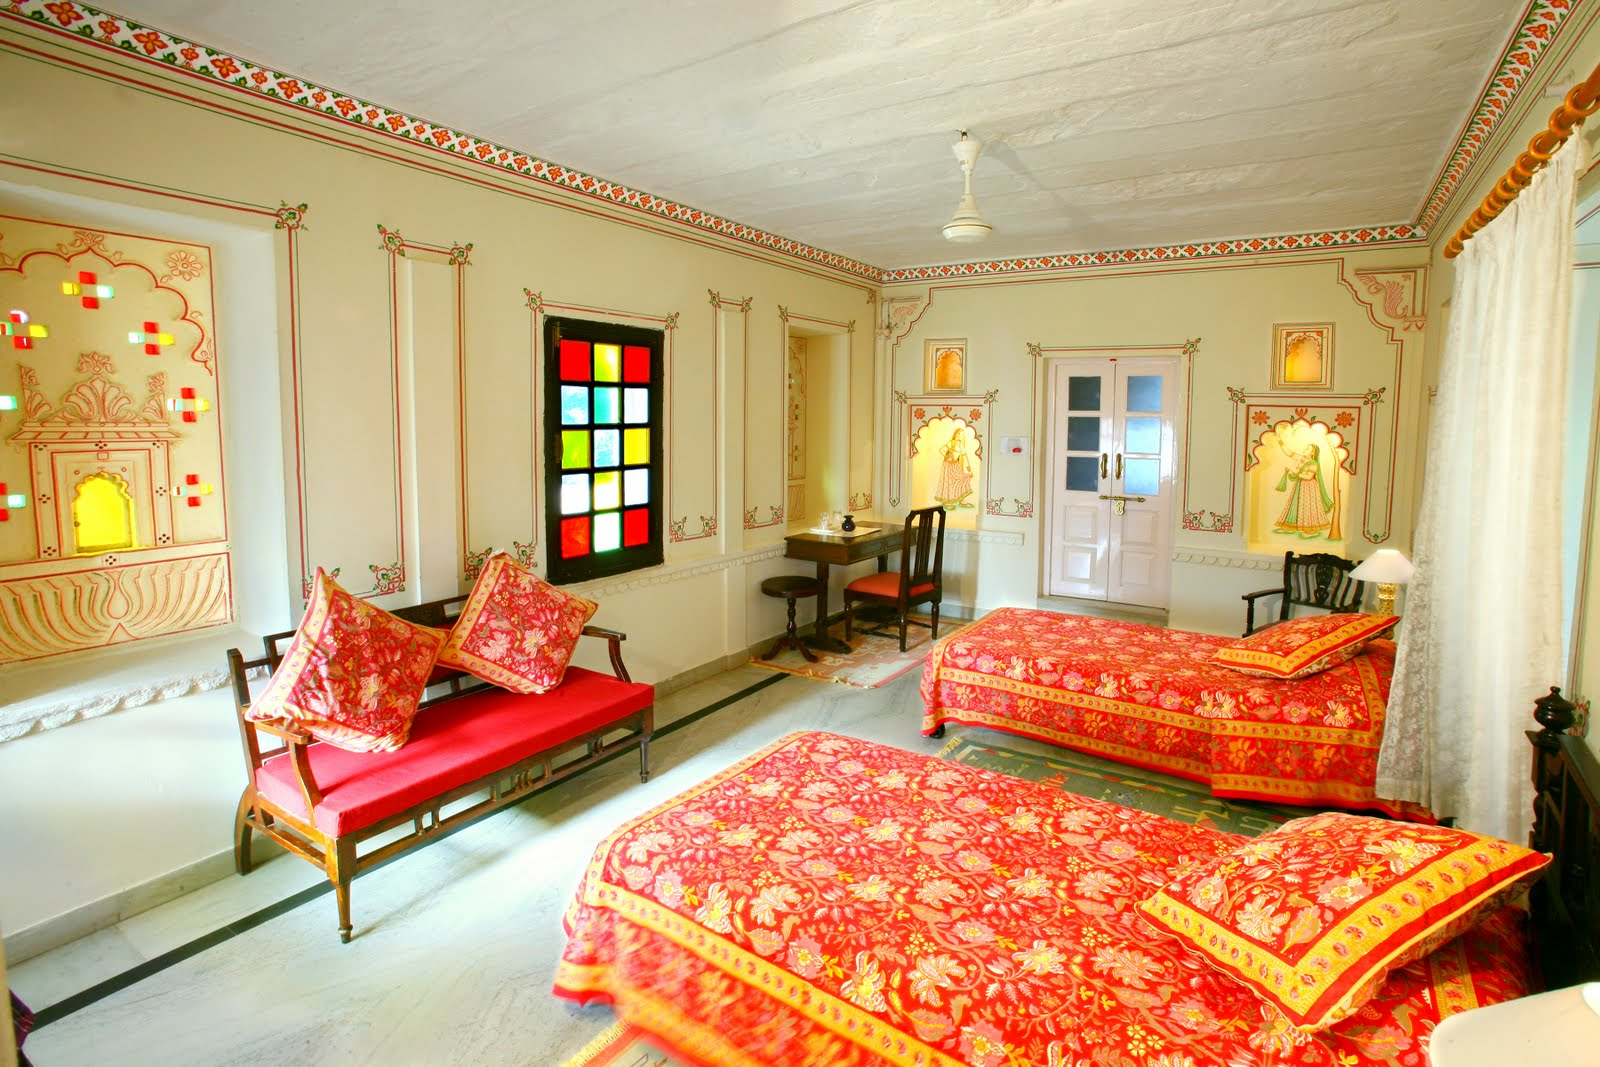 Rajasthani style interior design ideas palace interiors Interior design and interior decoration